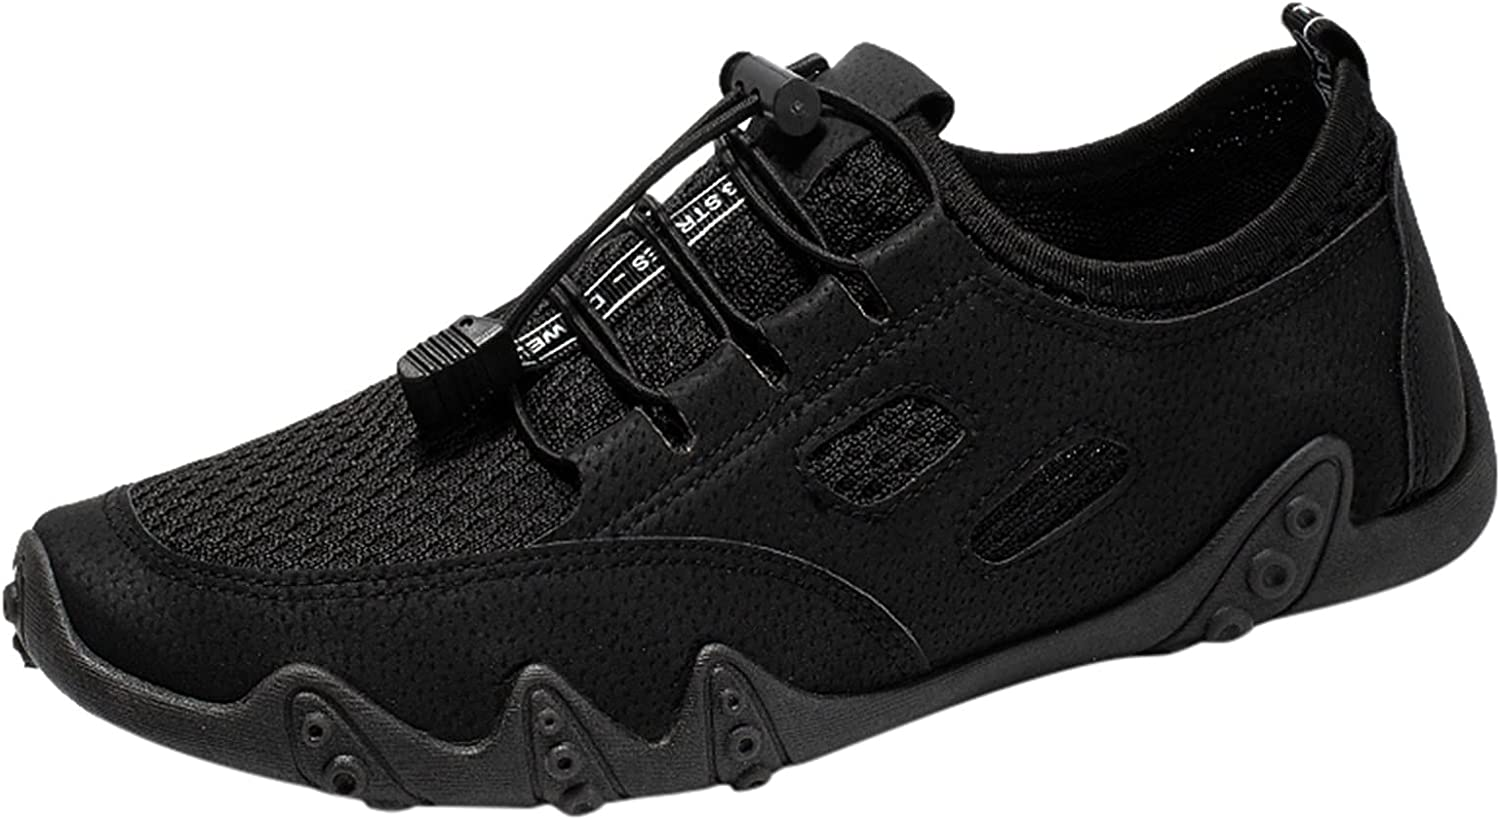 Men's Running Shoes Fashion Breathable Miami Mall C Super intense SALE Sole Sneakers Mesh Soft